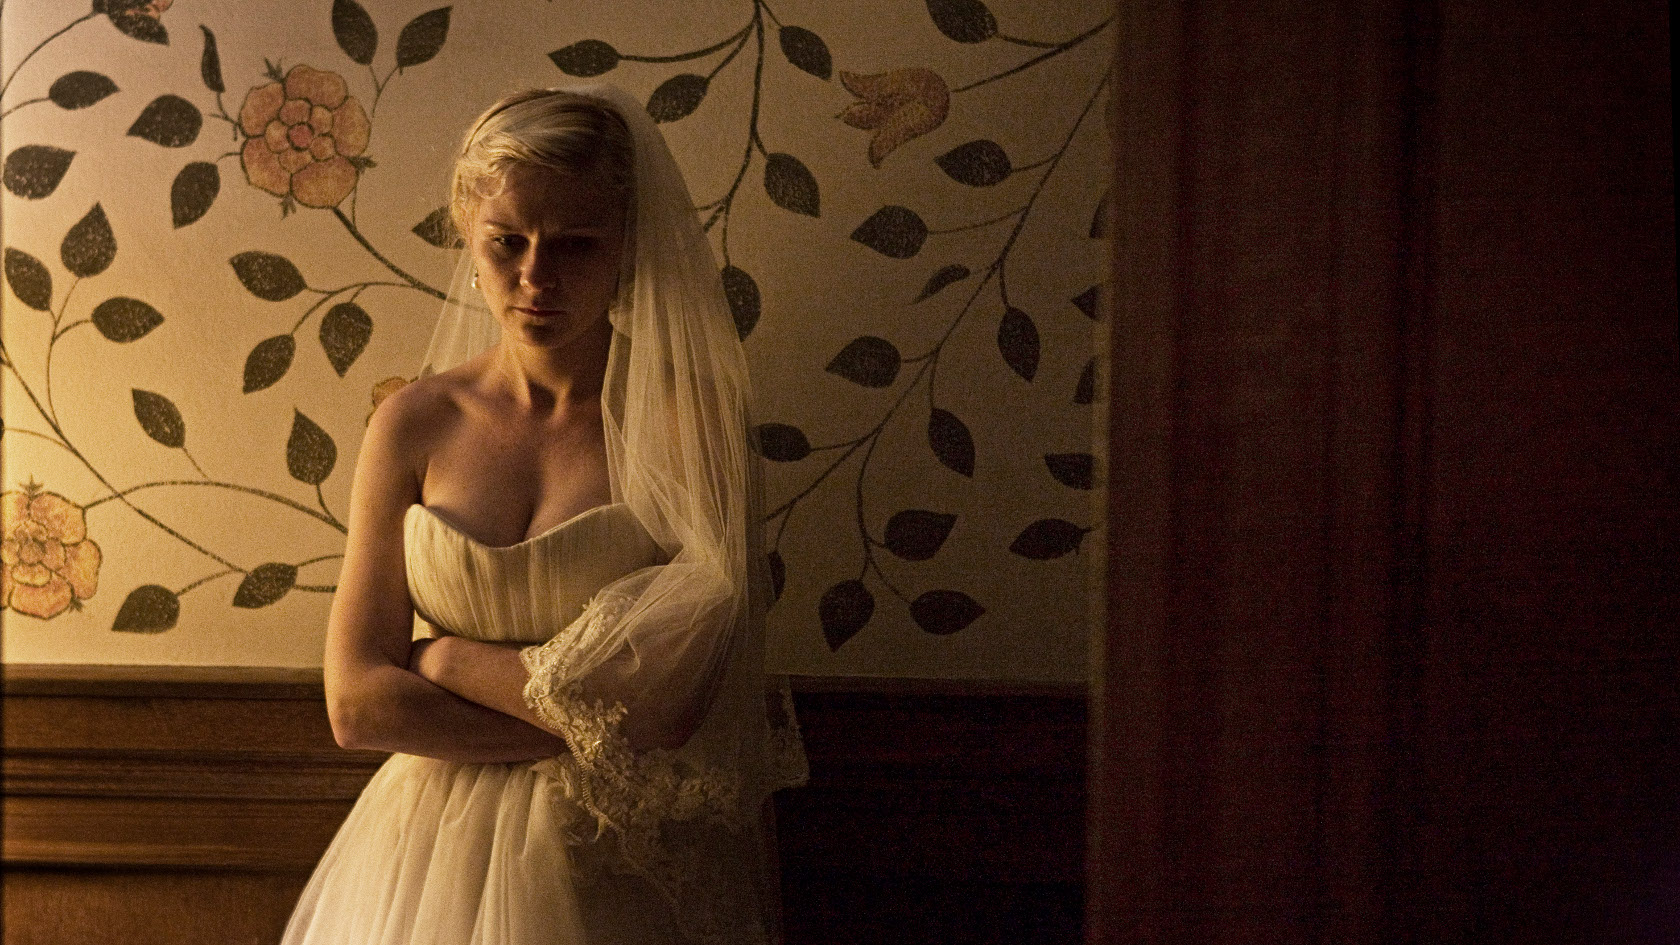 Kirsten Dunst falls into deep depression on her wedding day in Melancholia (2011)